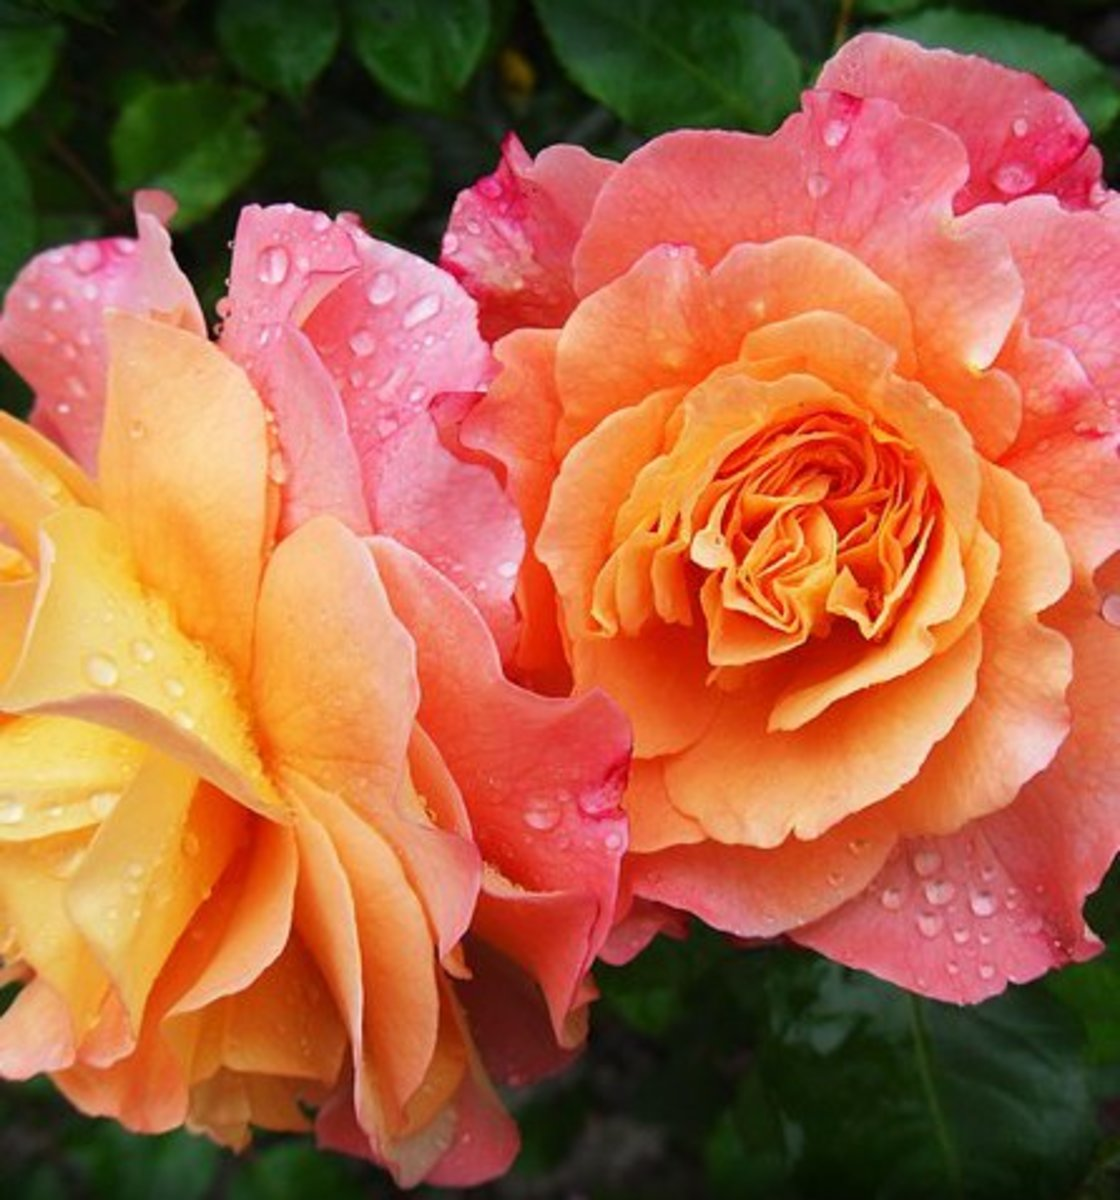 Orange-colored roses in bloom.